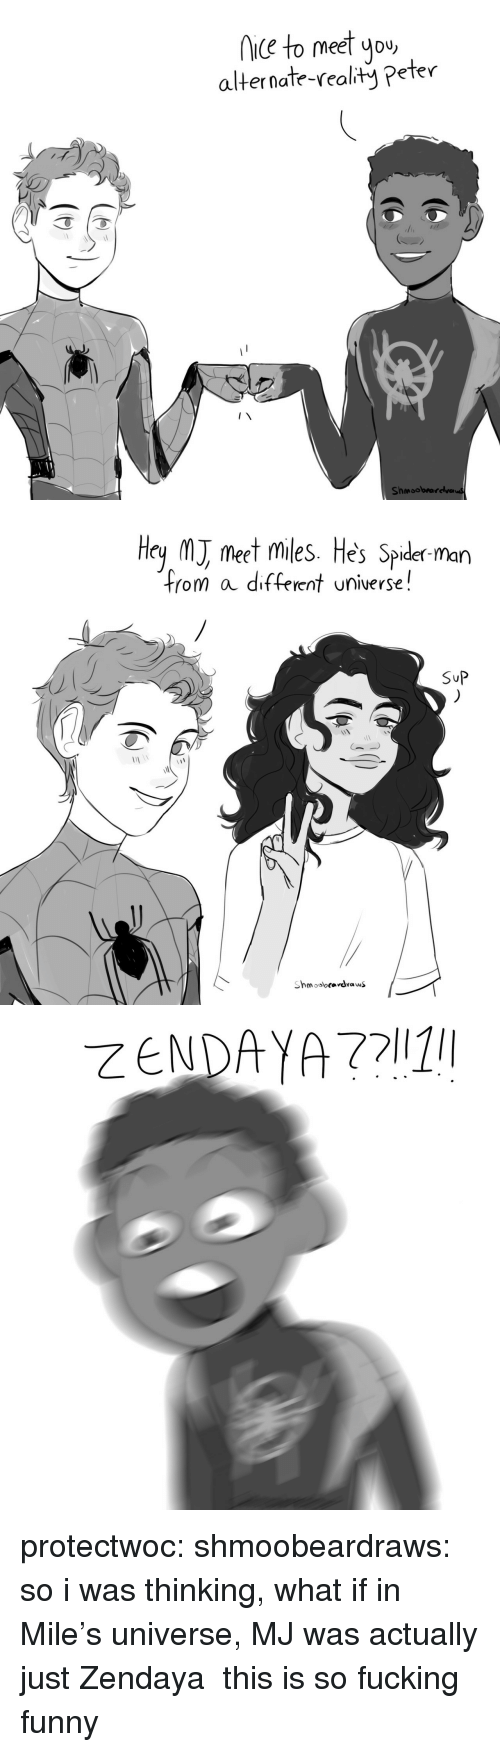 Fucking, Funny, and Spider: iC to meet you  alternate-realty Peter  Shmoobrarelva   Hey M meet miles. He's Spider man  from a different universe!  SuP protectwoc:  shmoobeardraws: so i was thinking, what if in Mile's universe, MJ was actually just Zendaya  this is so fucking funny